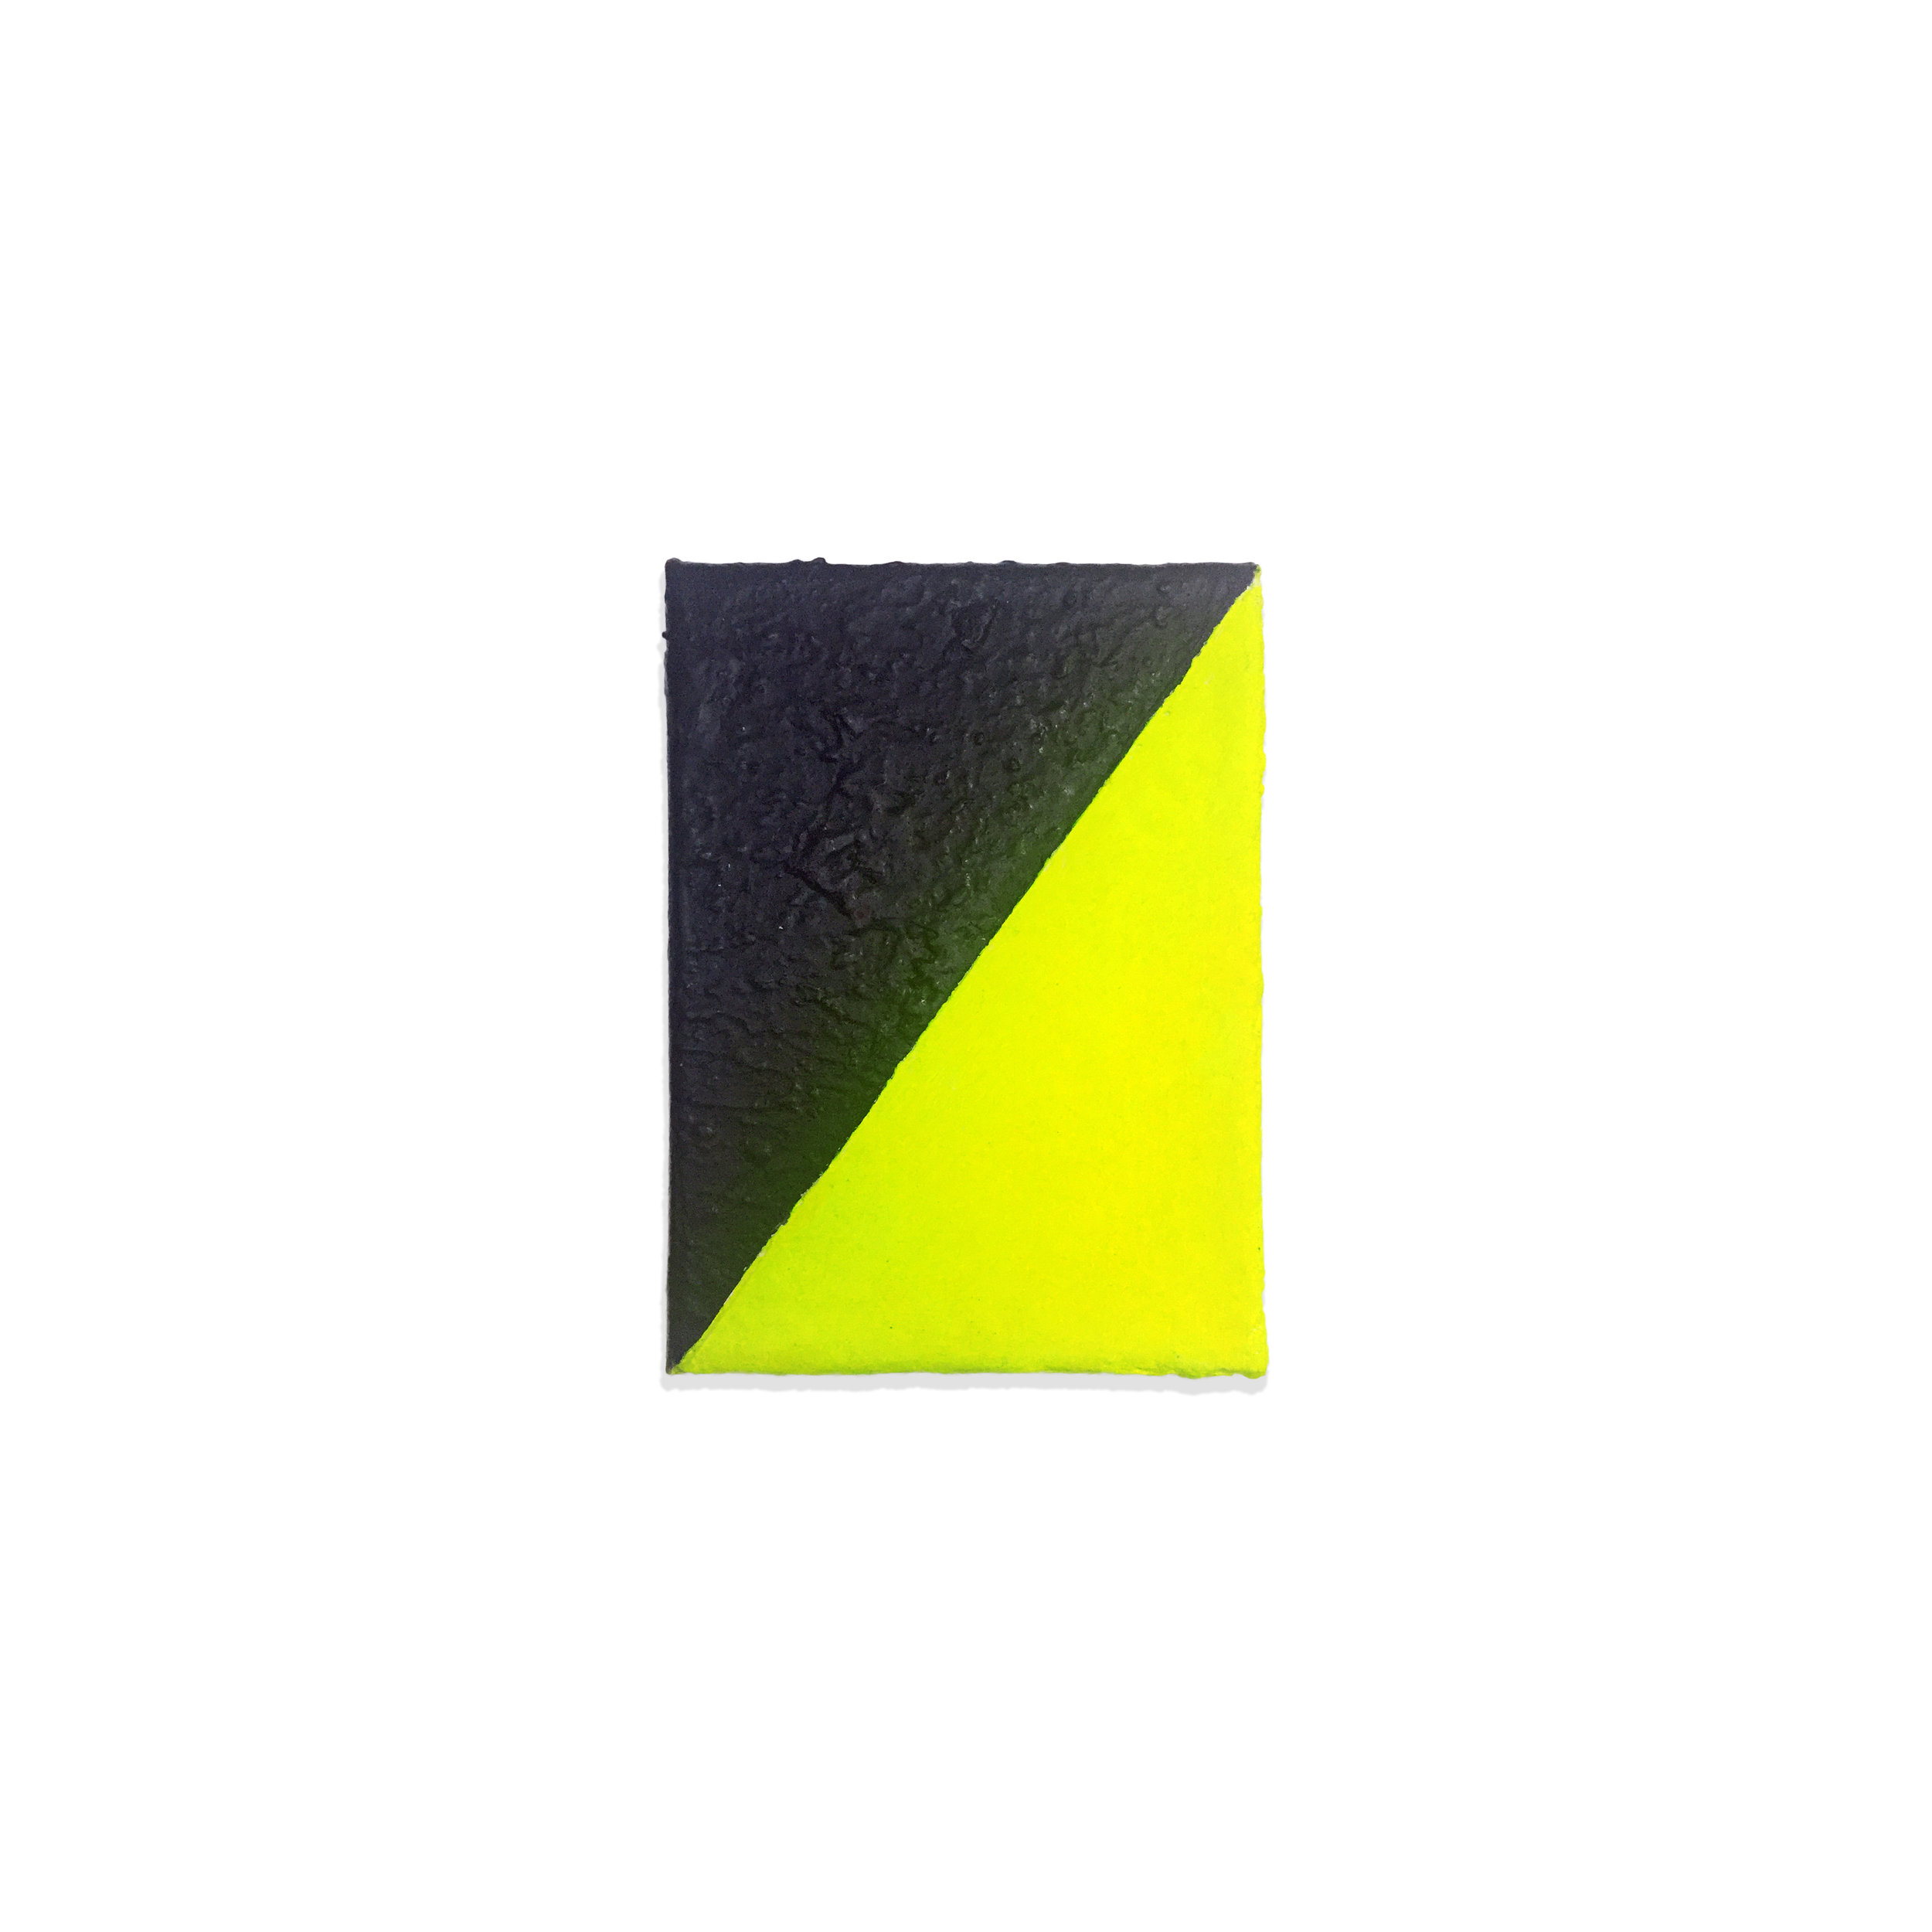 "Neon Yellow Diagonal, 2017, acrylic on canvas, 7"" x 5"""